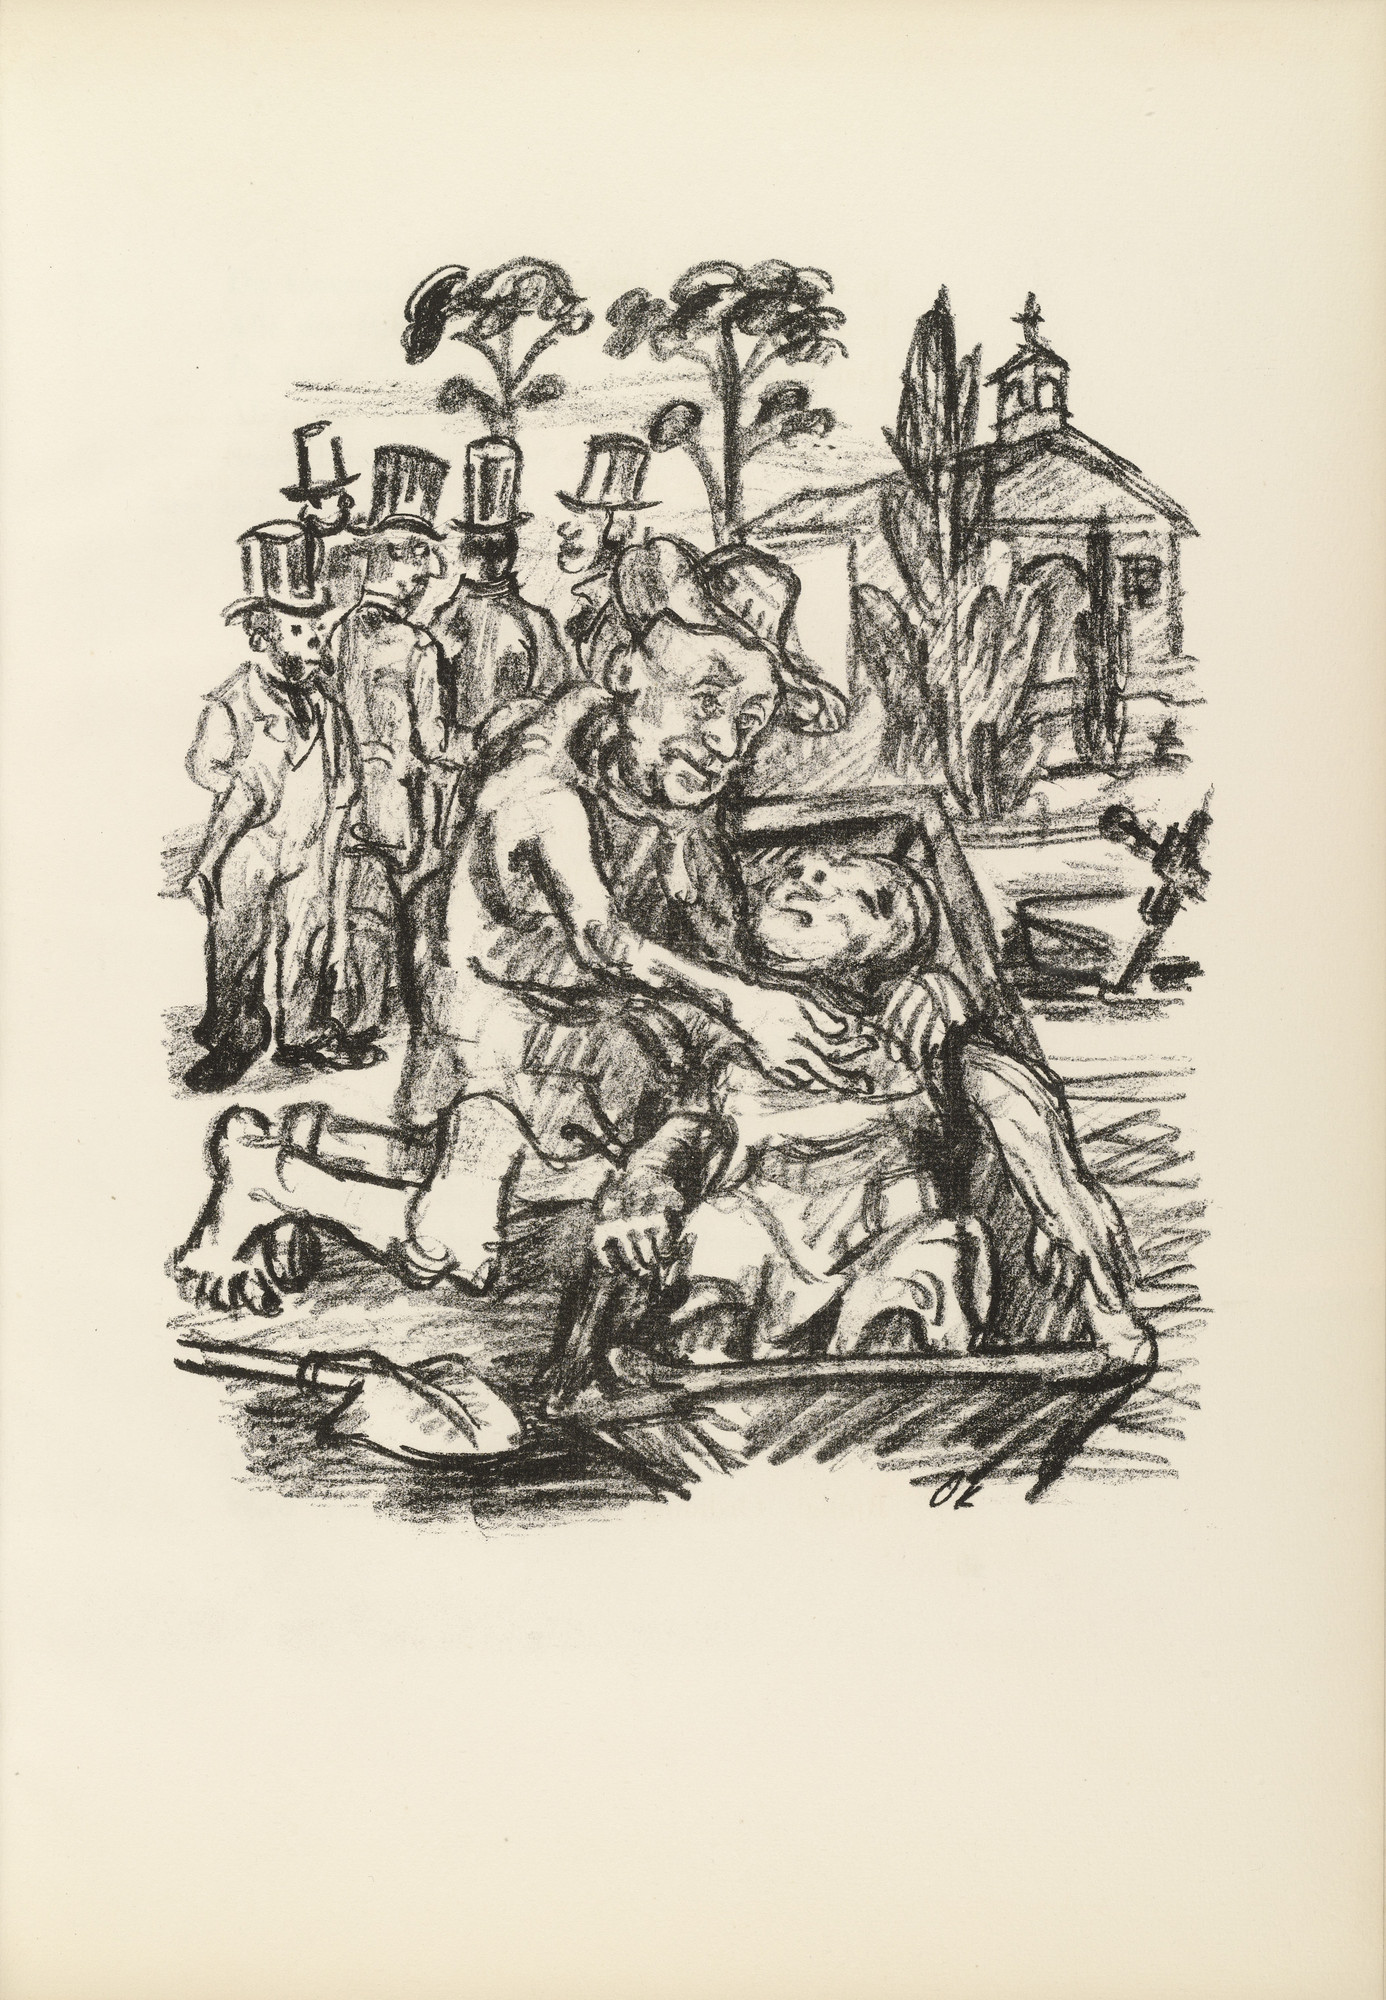 Oskar Kokoschka. The Gentlemen in Mourning Dress (Die Herren in Trauerkleidung) (plate, page 49) from Hiob (Job). 1917 (executed 1916/17)